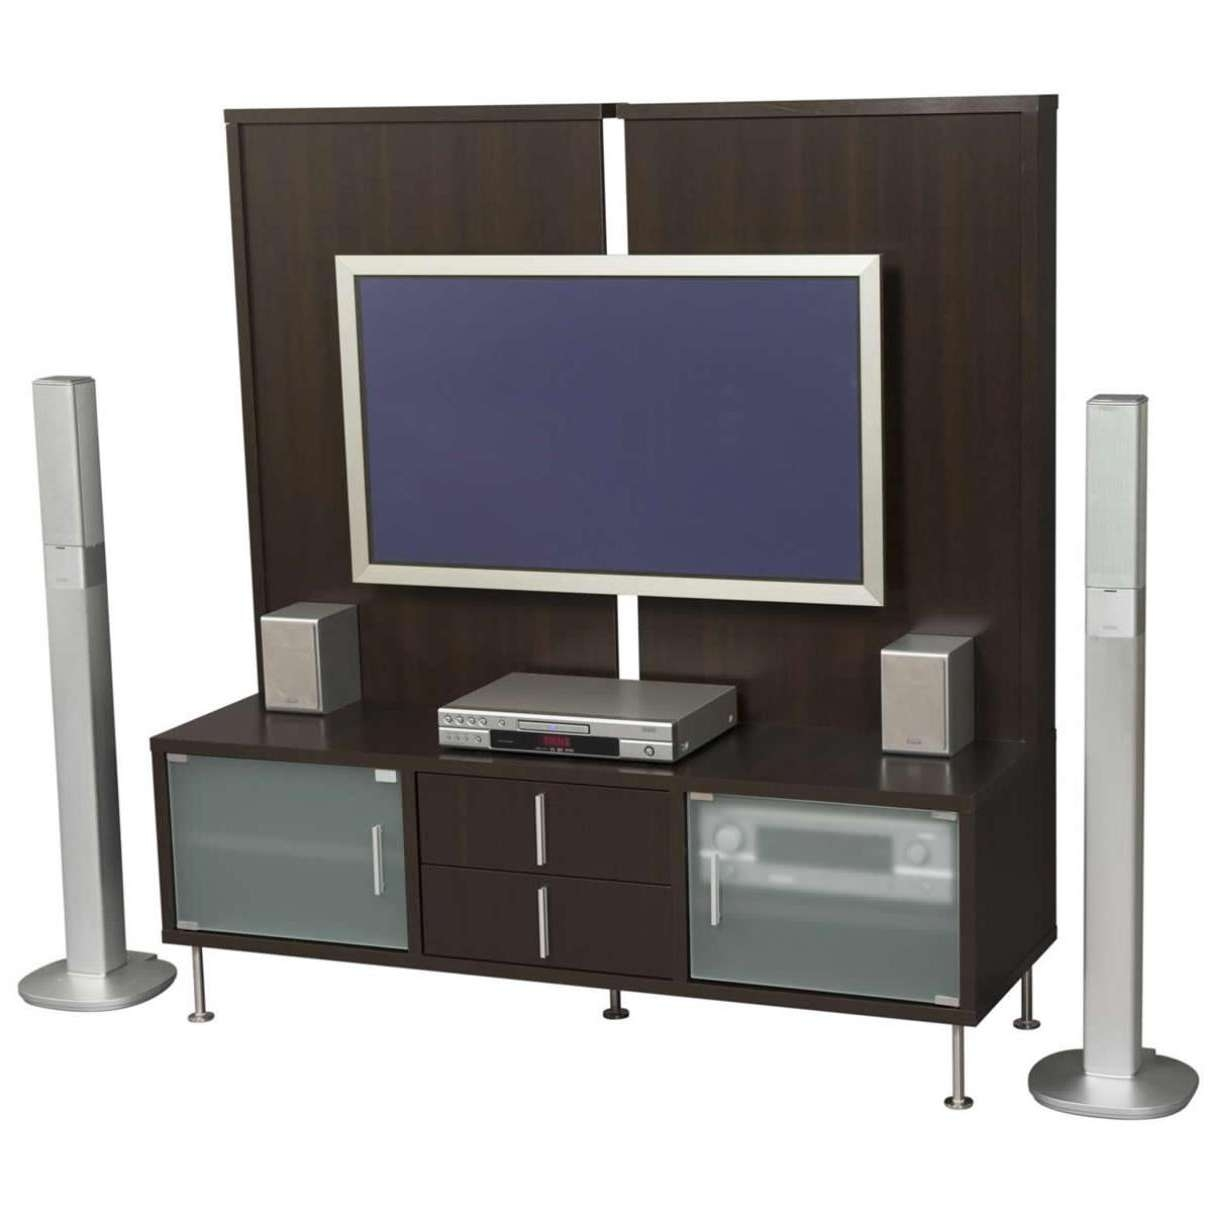 Tv Stand : 44 Marvelous At Home Tv Stand Images Ideas Tv Stands Regarding Sleek Tv Stands (View 11 of 15)